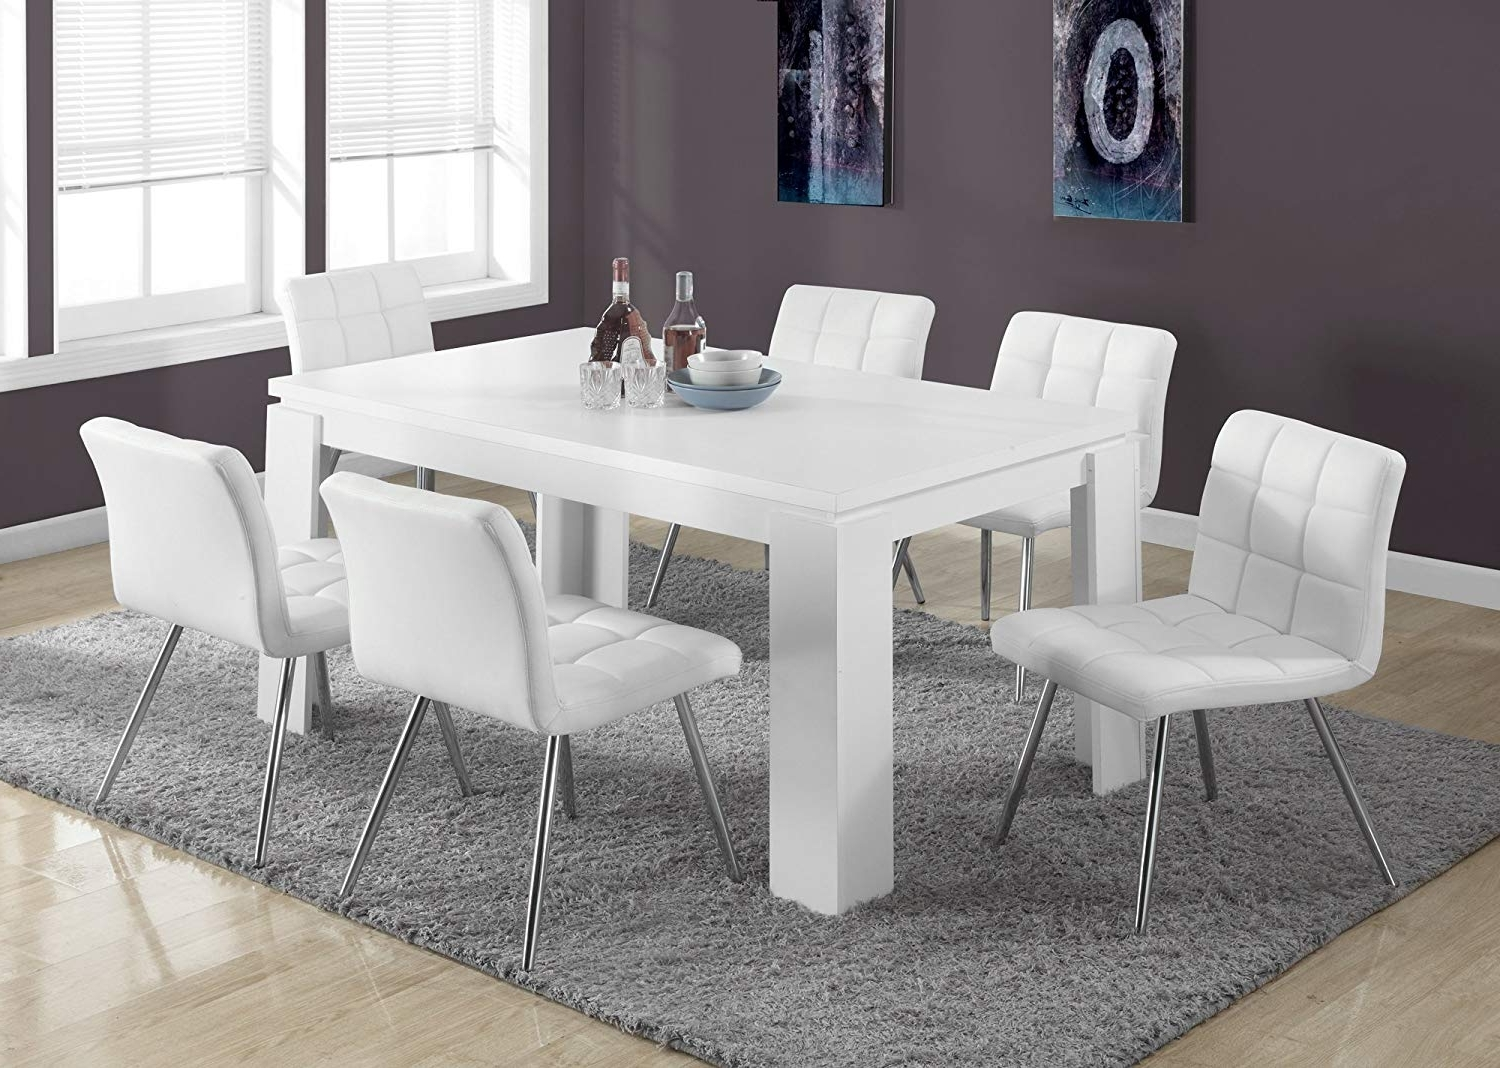 Amazon – Monarch Specialties I 1056, Dining Table, White Hollow With Well Liked Next White Dining Tables (View 7 of 25)